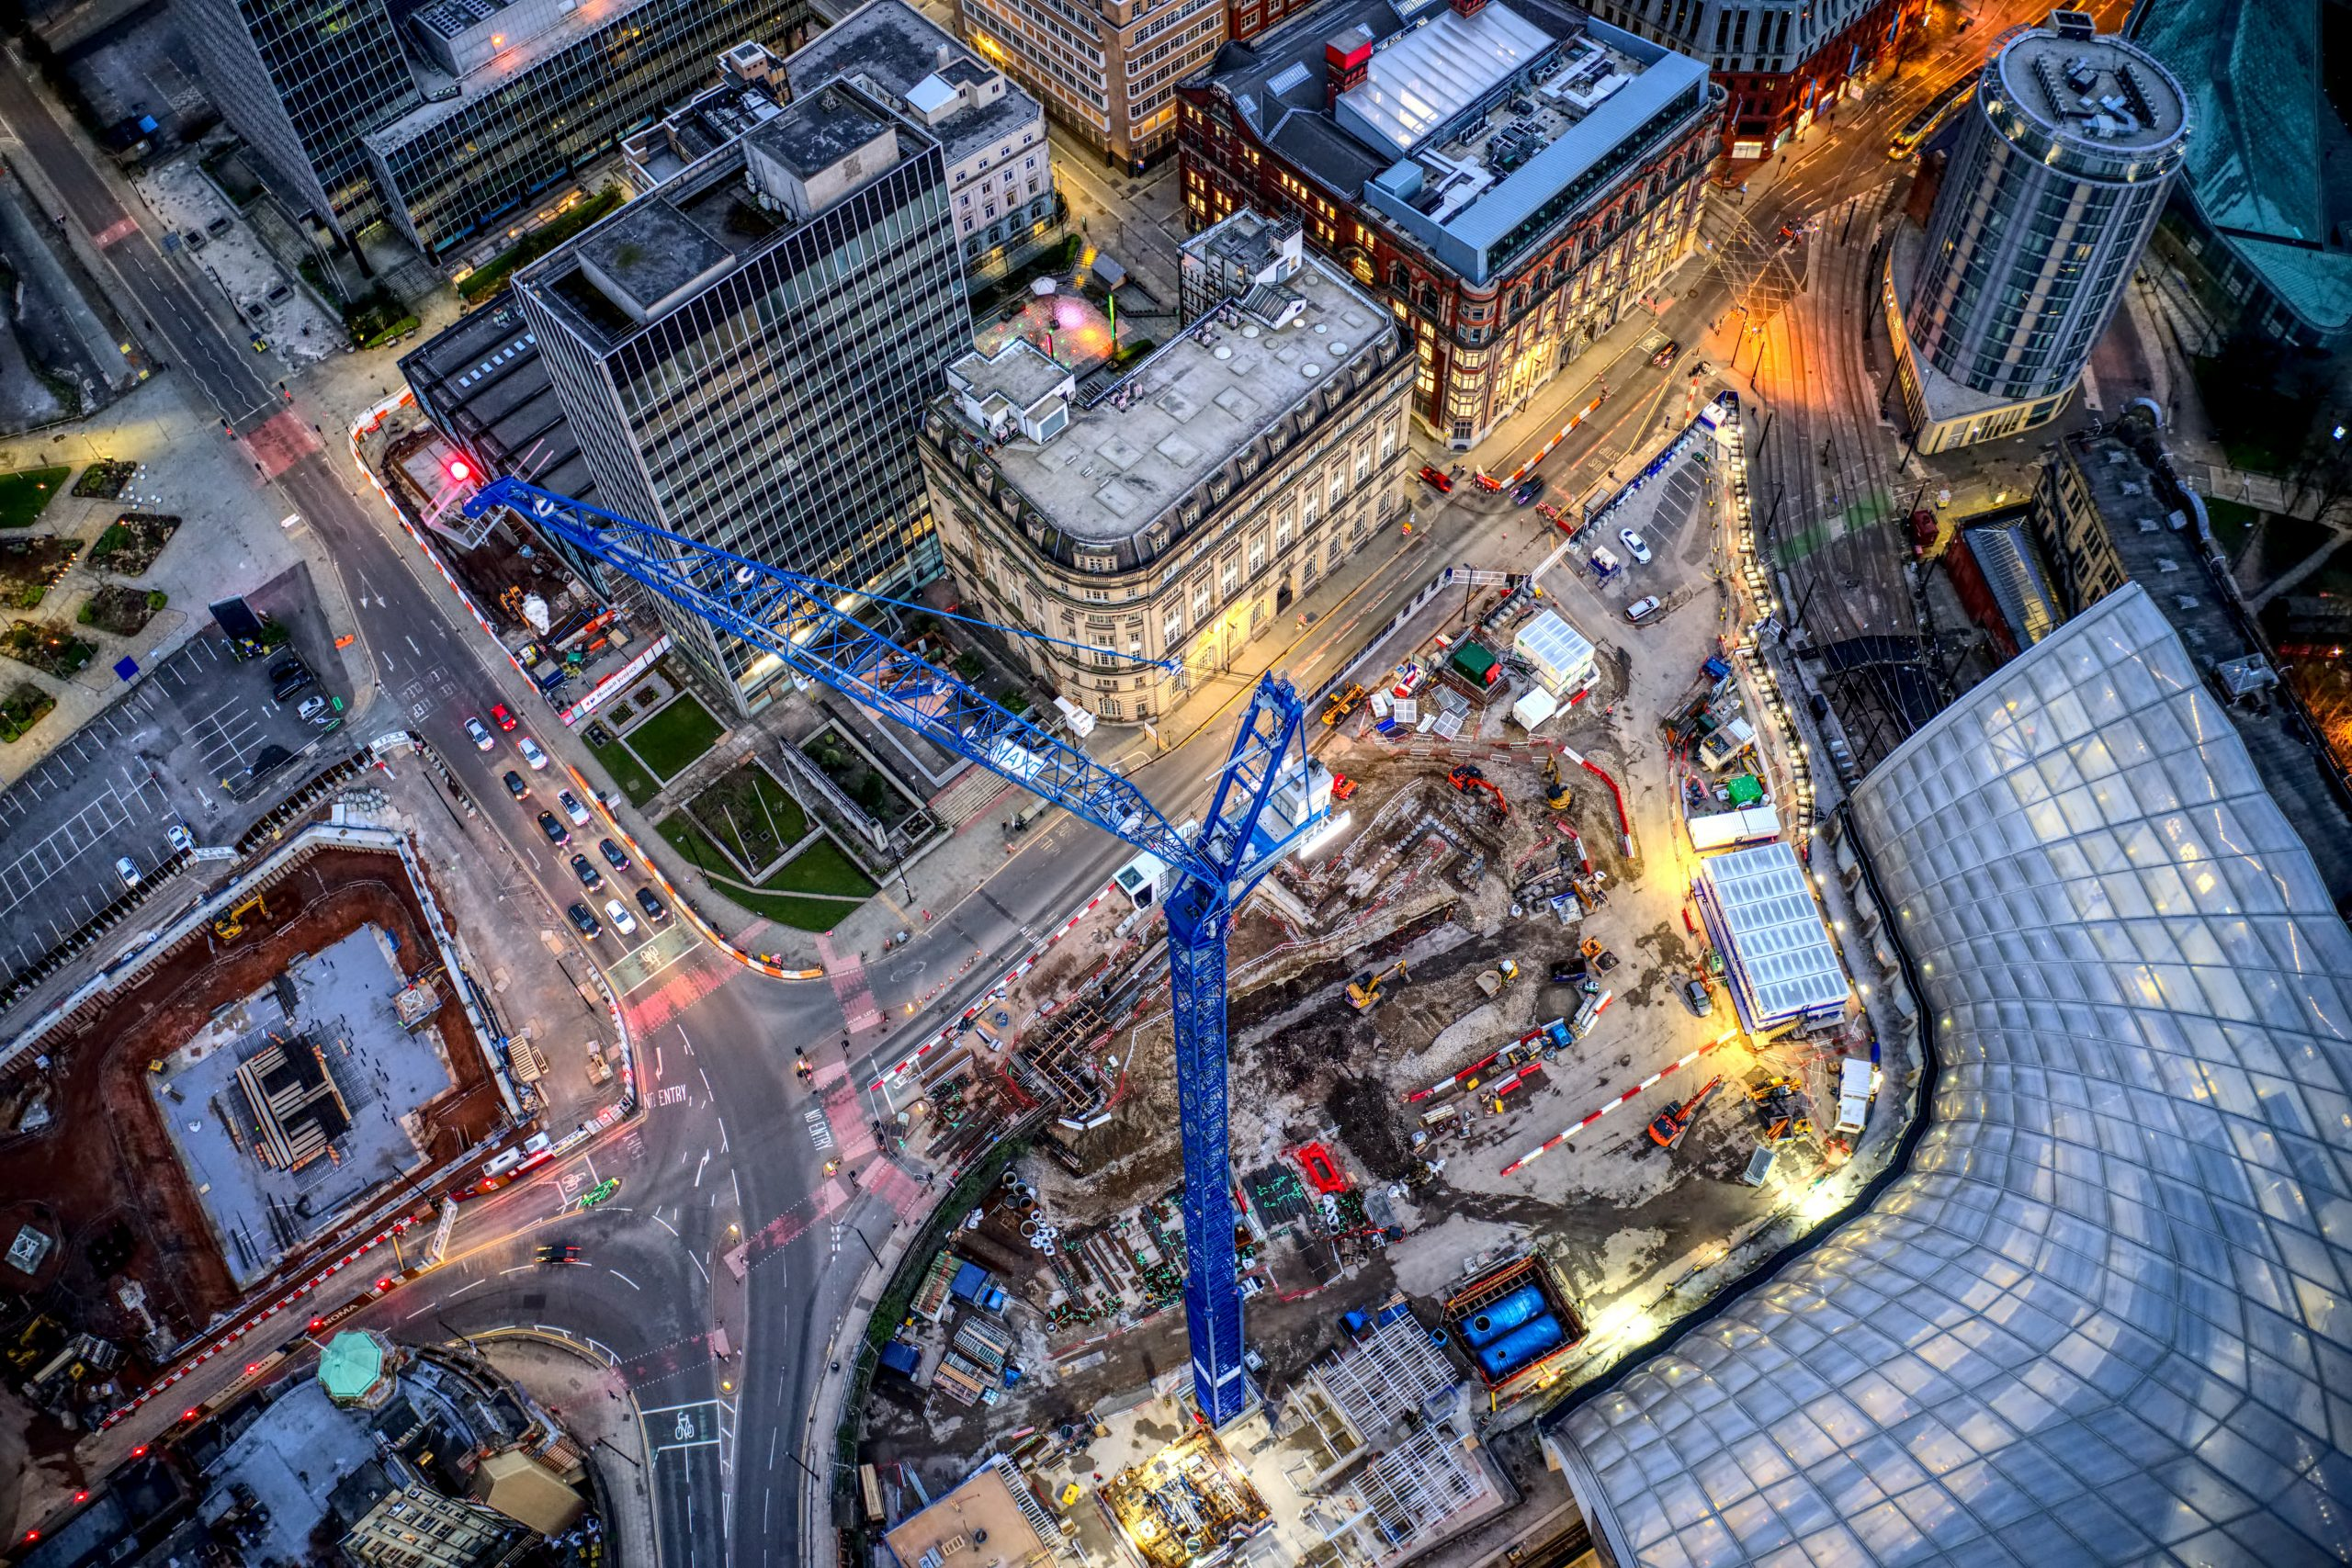 M&E Engineers impact on Manchester's redevelopment